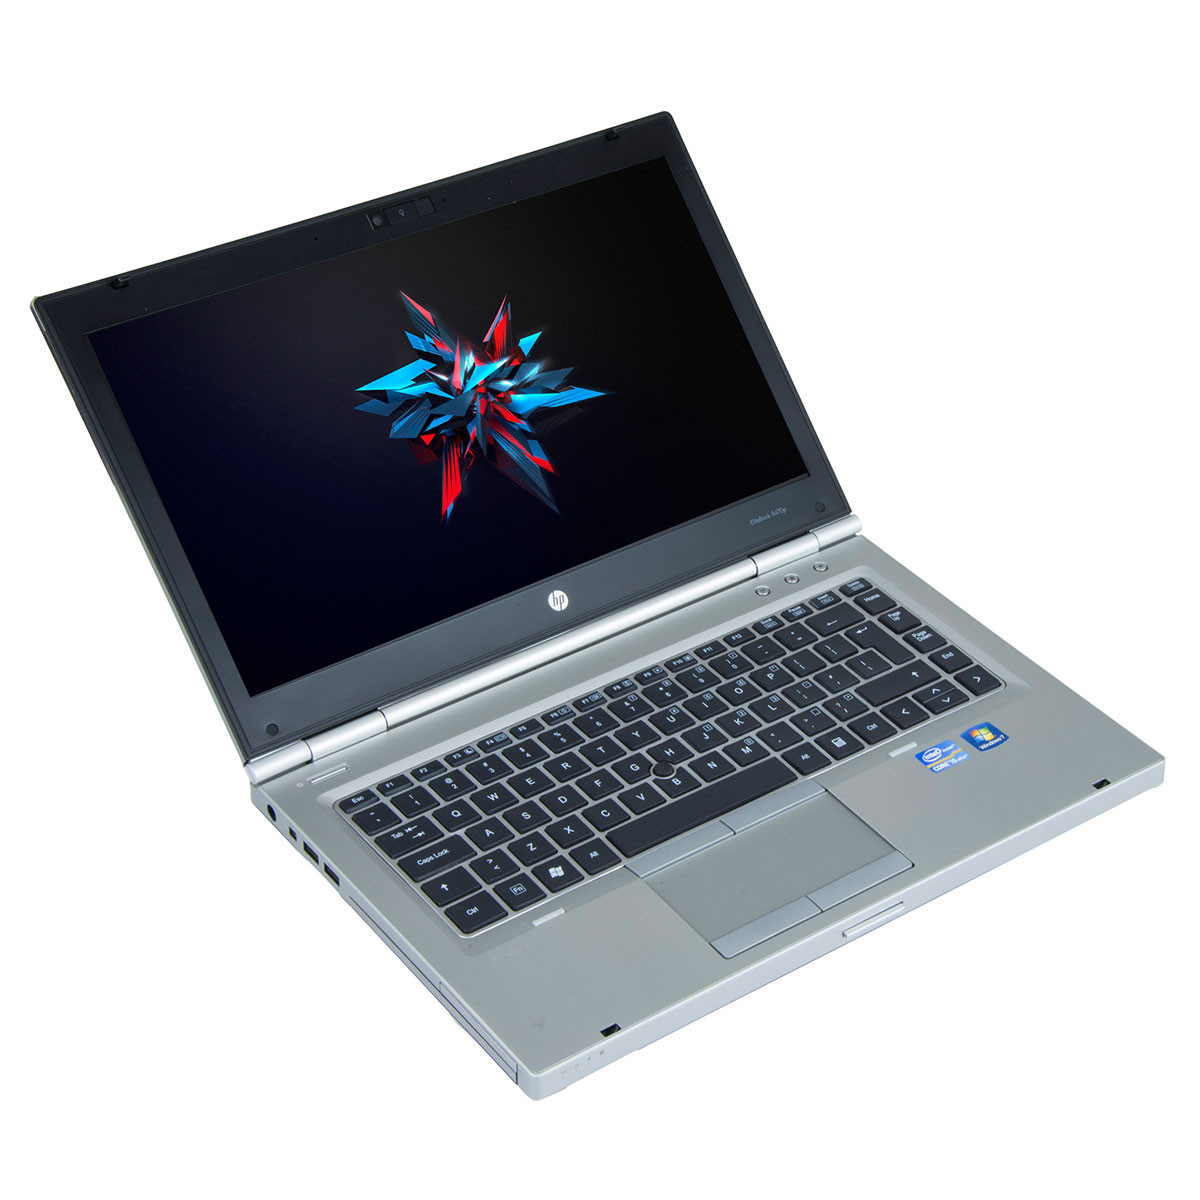 HP Elitebook 8470p 14 inch LED, Intel Core i5-3360M 2 80 GHz, 8 GB DDR 3,  256 GB SSD, DVD-RW, Webcam, Windows 10 Pro MAR